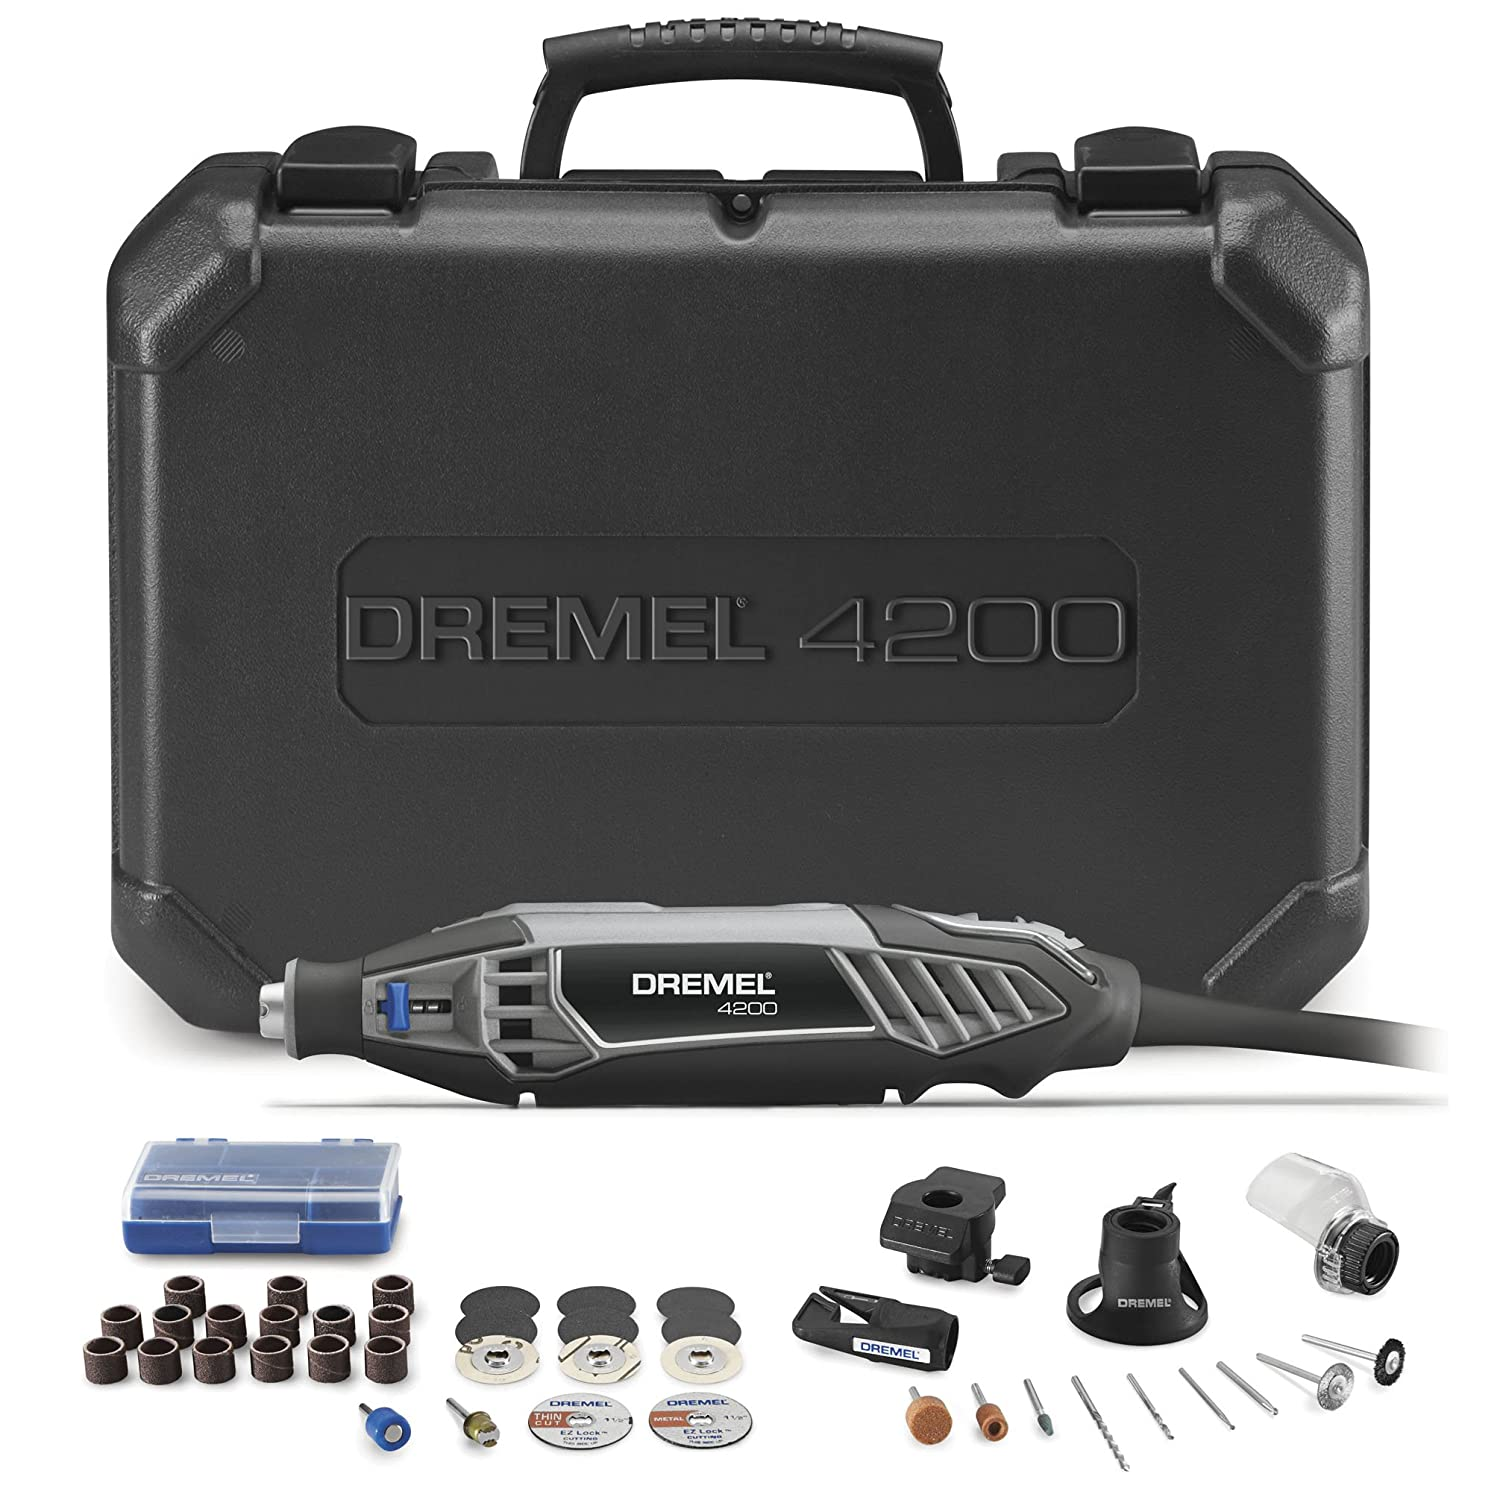 Dremel 4200-4/36 High Performance Rotary Tool Kit with EZ Change, 4-Attachments and 36-Accessories